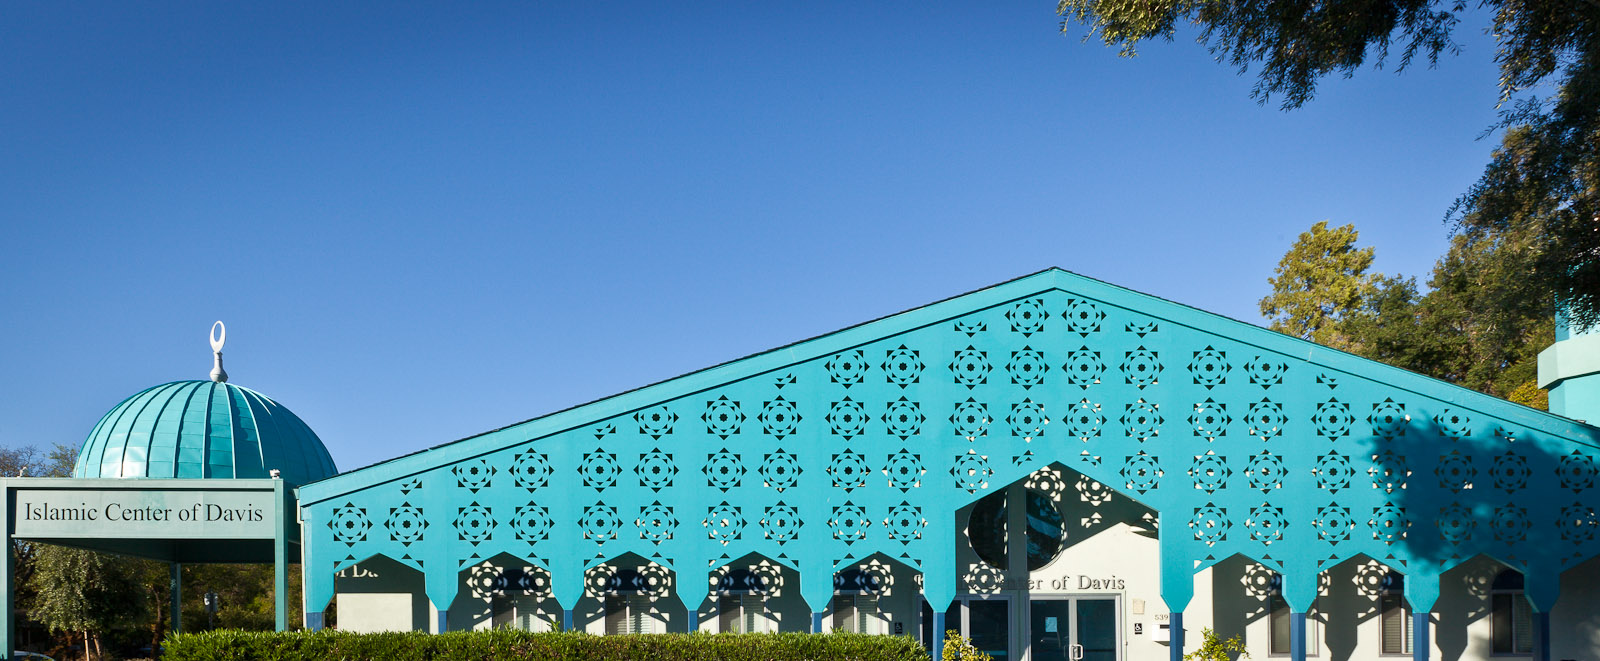 This is the Islamic Center of Davis designed by architect Maria Ogrydziak. Photo by Jay Graham